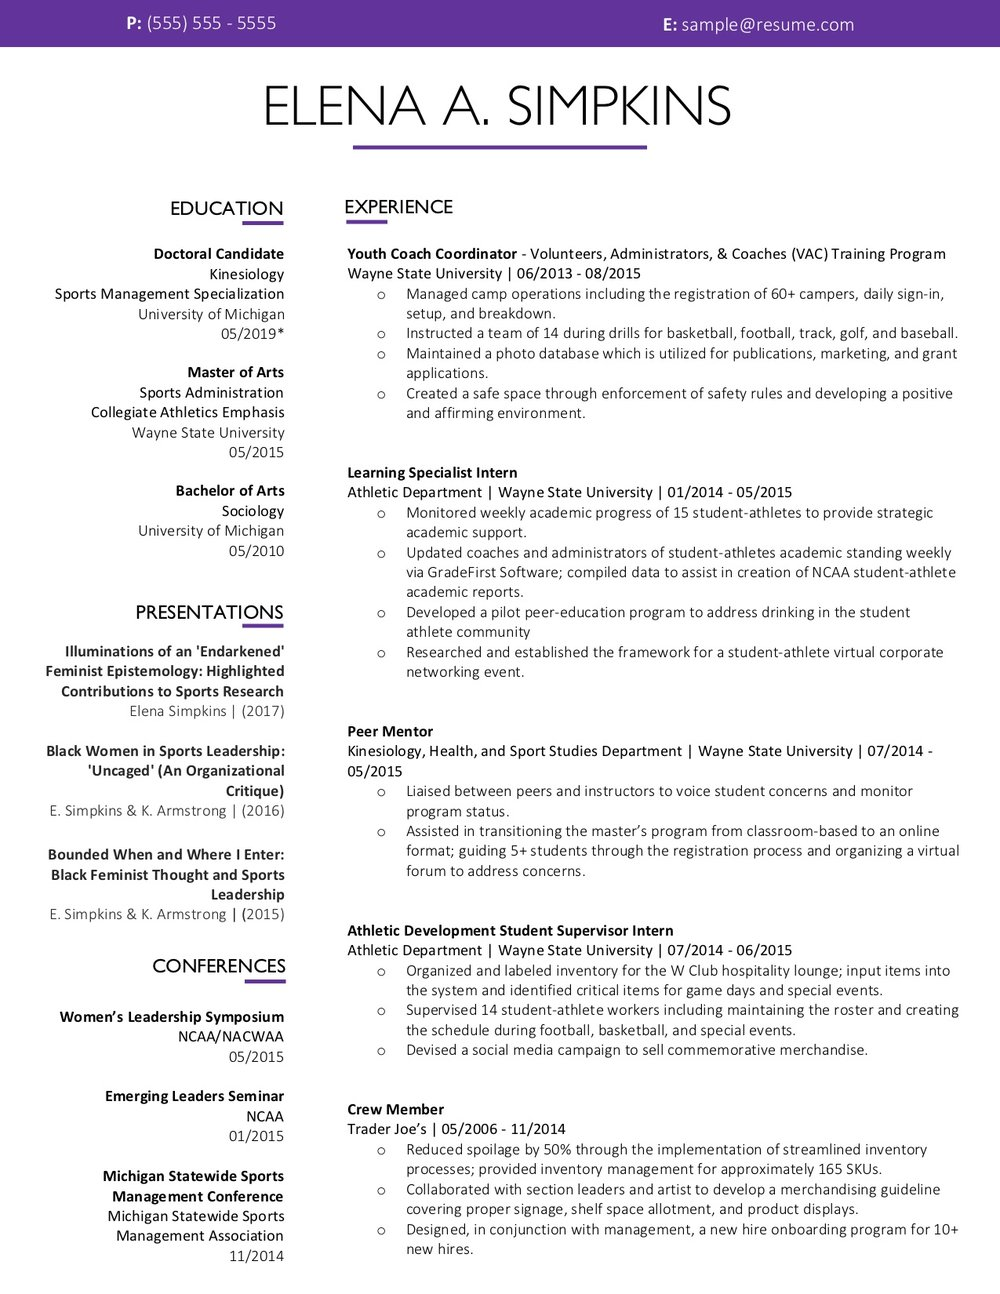 Client Resume #35. Click to Enlarge.